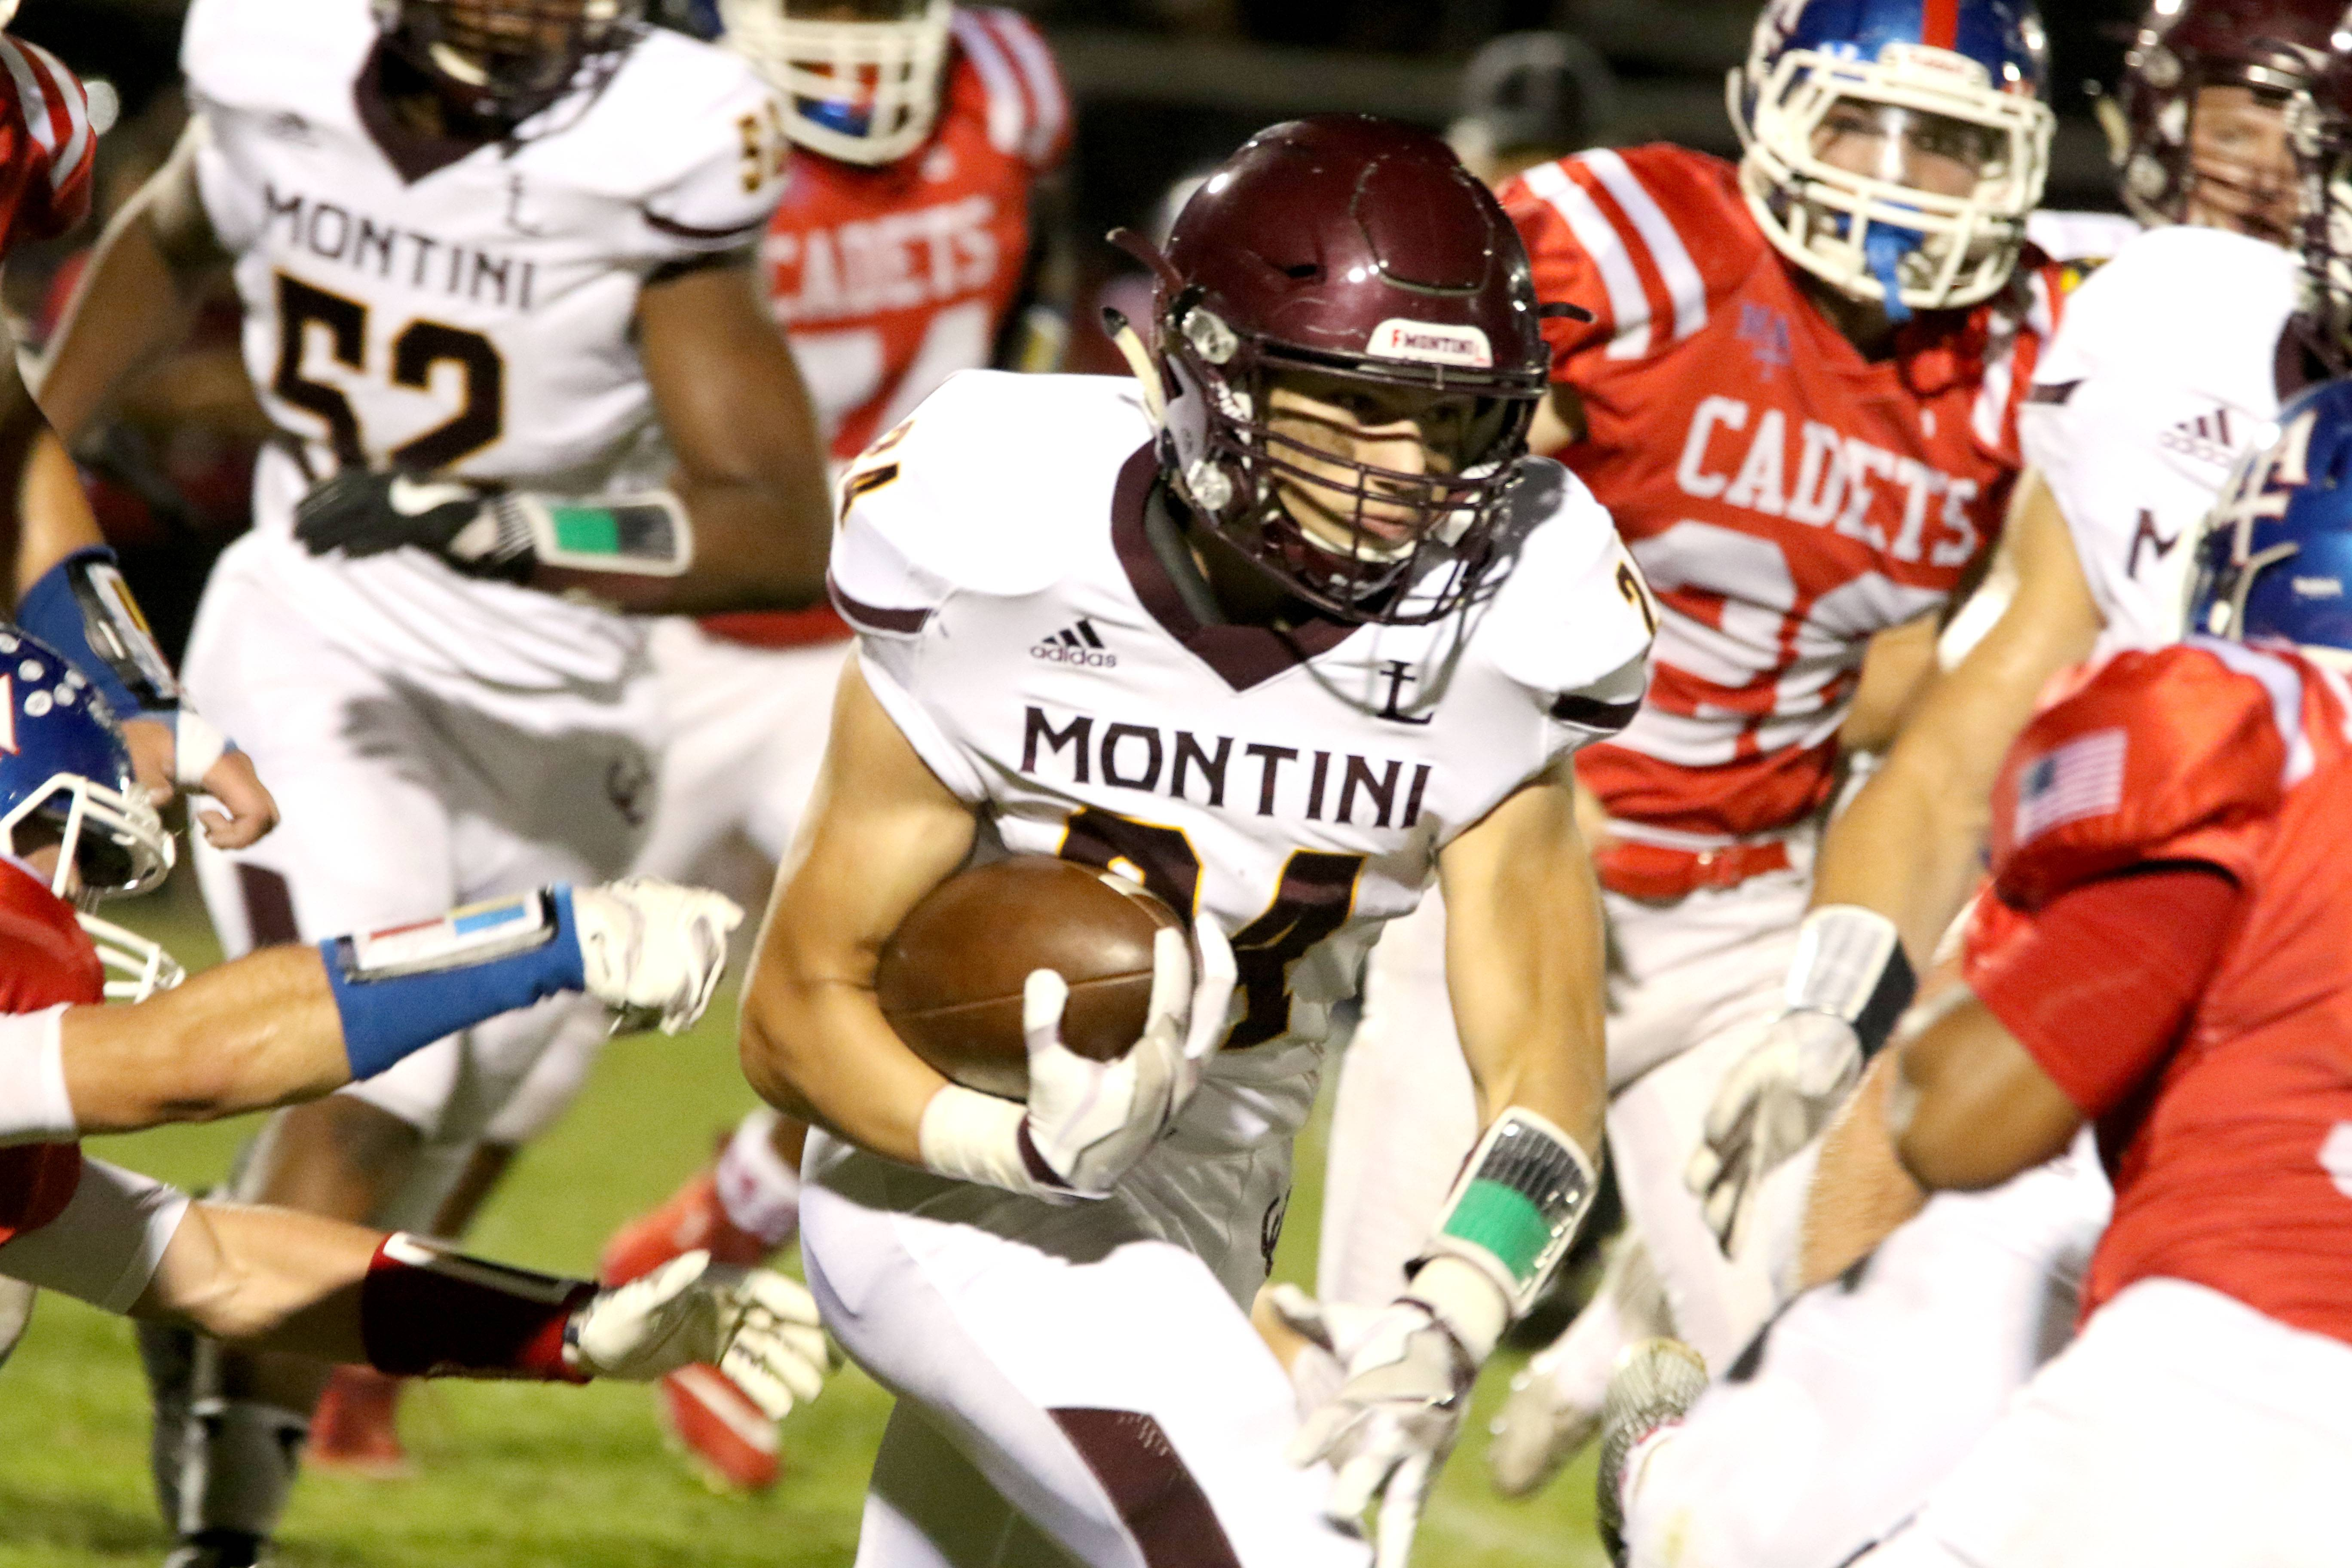 Montini's Nicholas Fedanzo runs the ball during varsity football at Fichtel Field on the campus of Marmion Academy in Aurora Friday night.